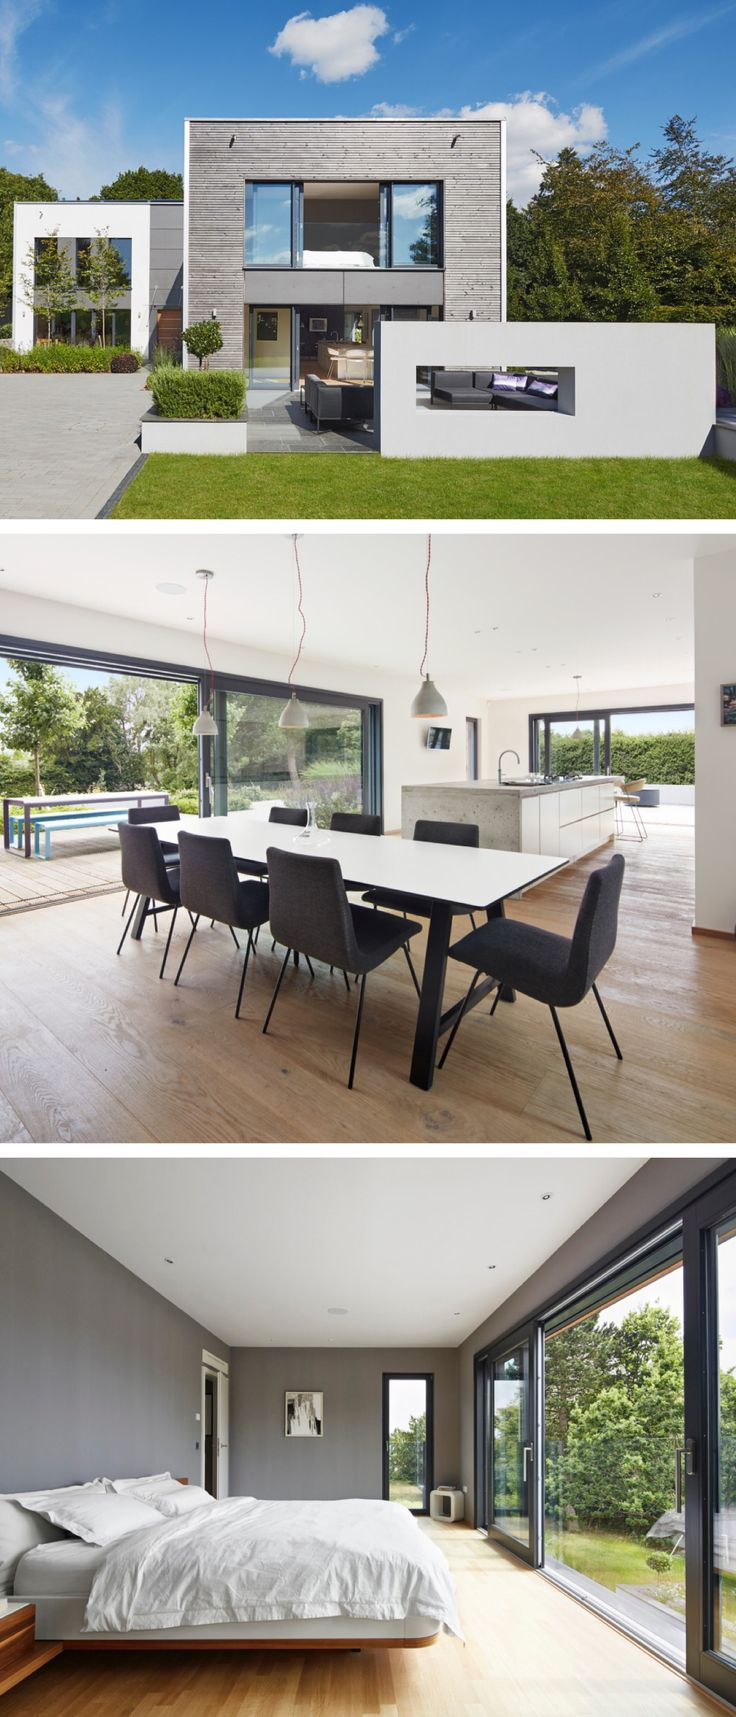 427 best Wohnen images on Pinterest | Blueprints for homes, Future ...